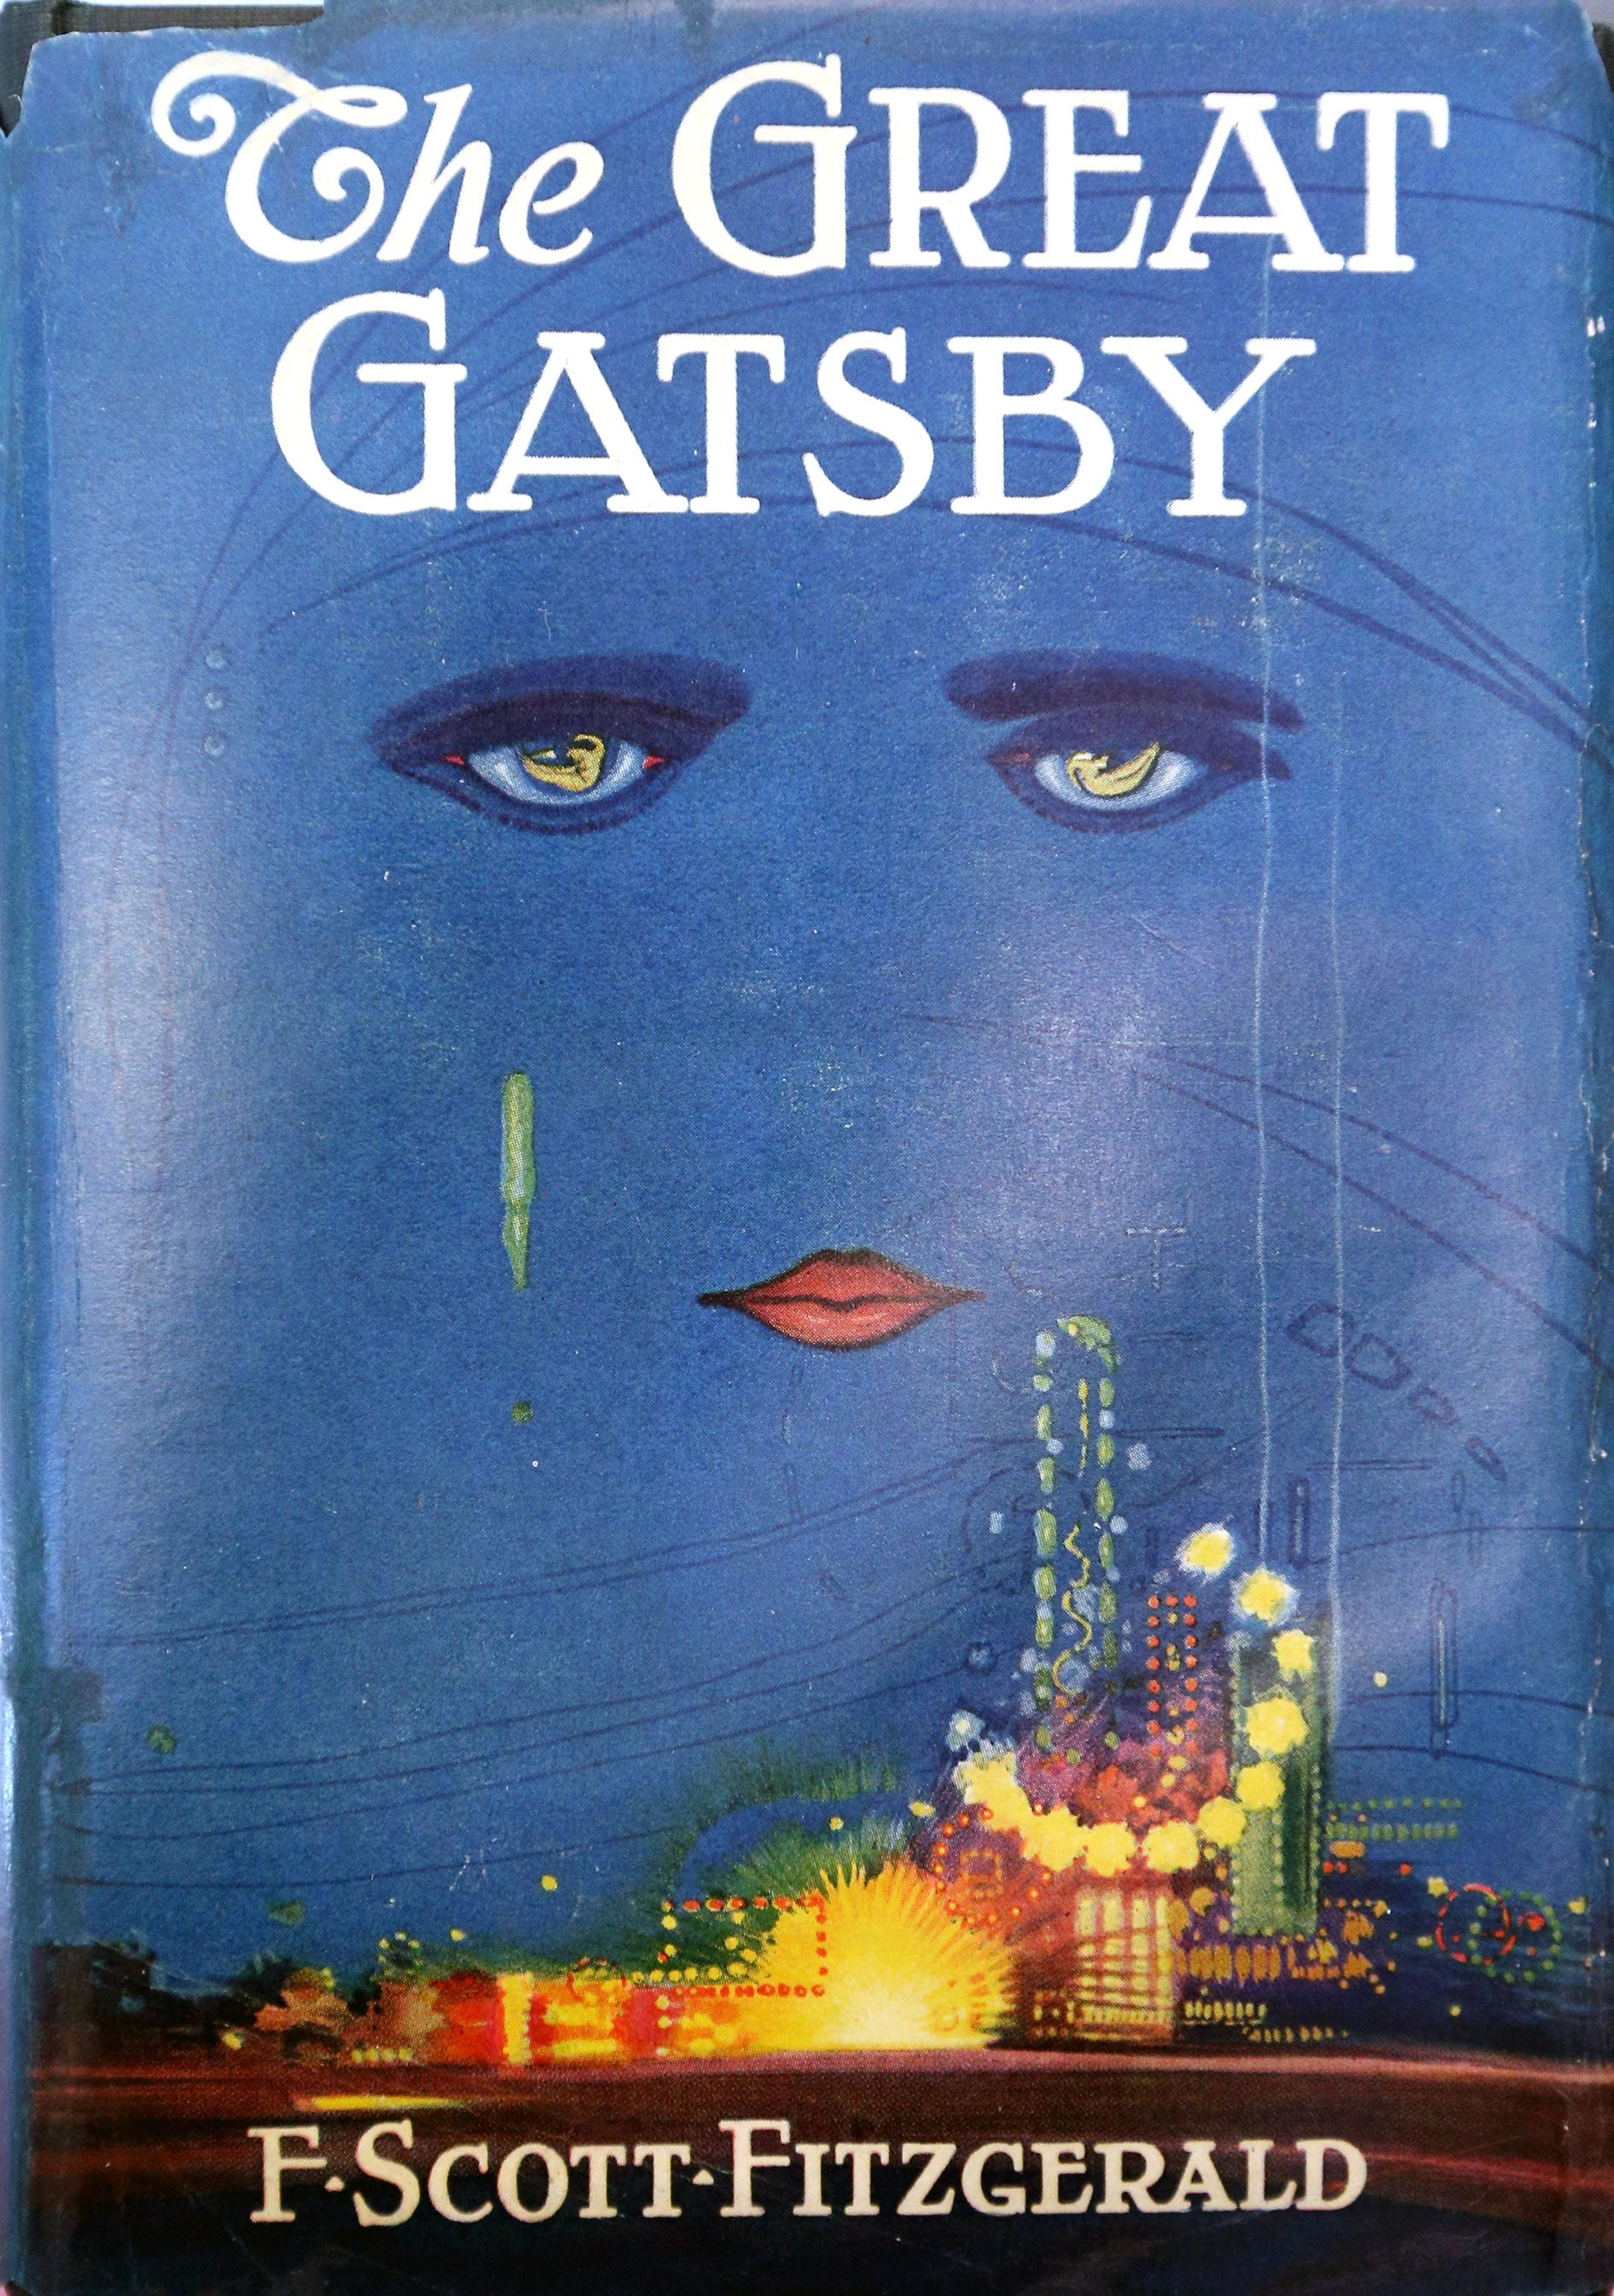 the great gatsby 14 essay View essay - the great gatsby chapter 3 essay from engl 20023 at university of melbourne the great gatsby chapter 3 commentary essay by describing gatsbys lavish party, fitzgerald illustrates the.